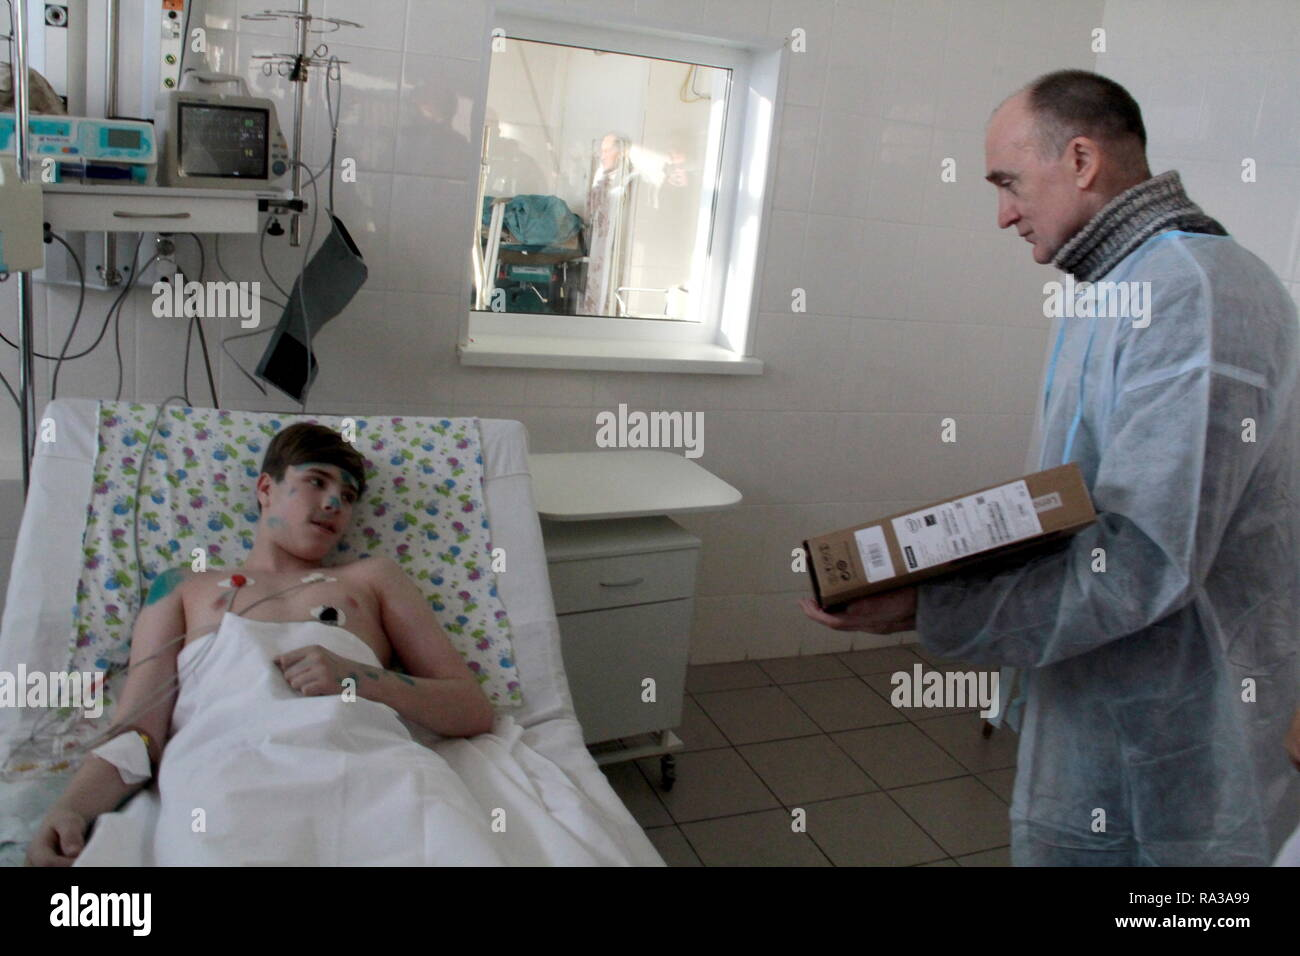 Magnitogorsk, Russia. 01st Jan, 2019. MAGNITOGORSK, RUSSIA - JANUARY 1, 2019: Chelyabinsk Region Governor Boris Dubrovsky (R) visits Sergei Gavrilov injured in an apartment block collapse at a hospital. On December 31, 2018, a domestic gas explosion caused a partial collapse of a residential building at 164 Prospekt Karla Marksa Street killing eight people and leaving dozens missing. Ilya Moskovets/TASS Credit: ITAR-TASS News Agency/Alamy Live News - Stock Image